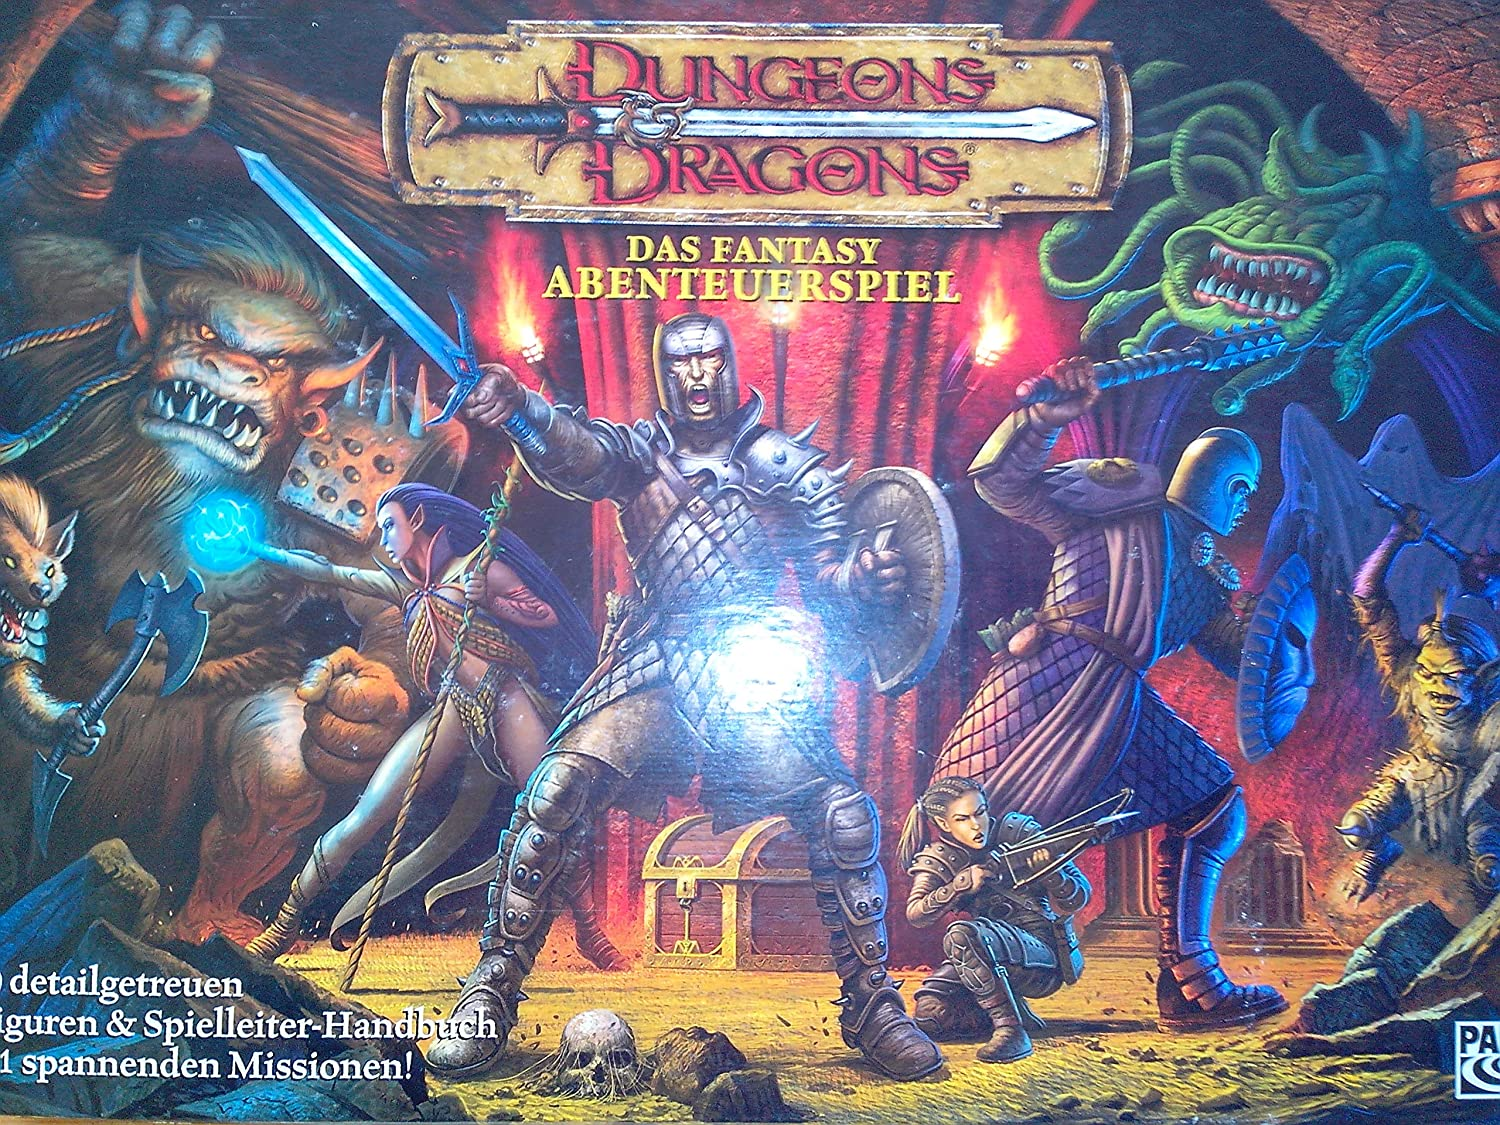 Dungeons and Dragons Brettspiel